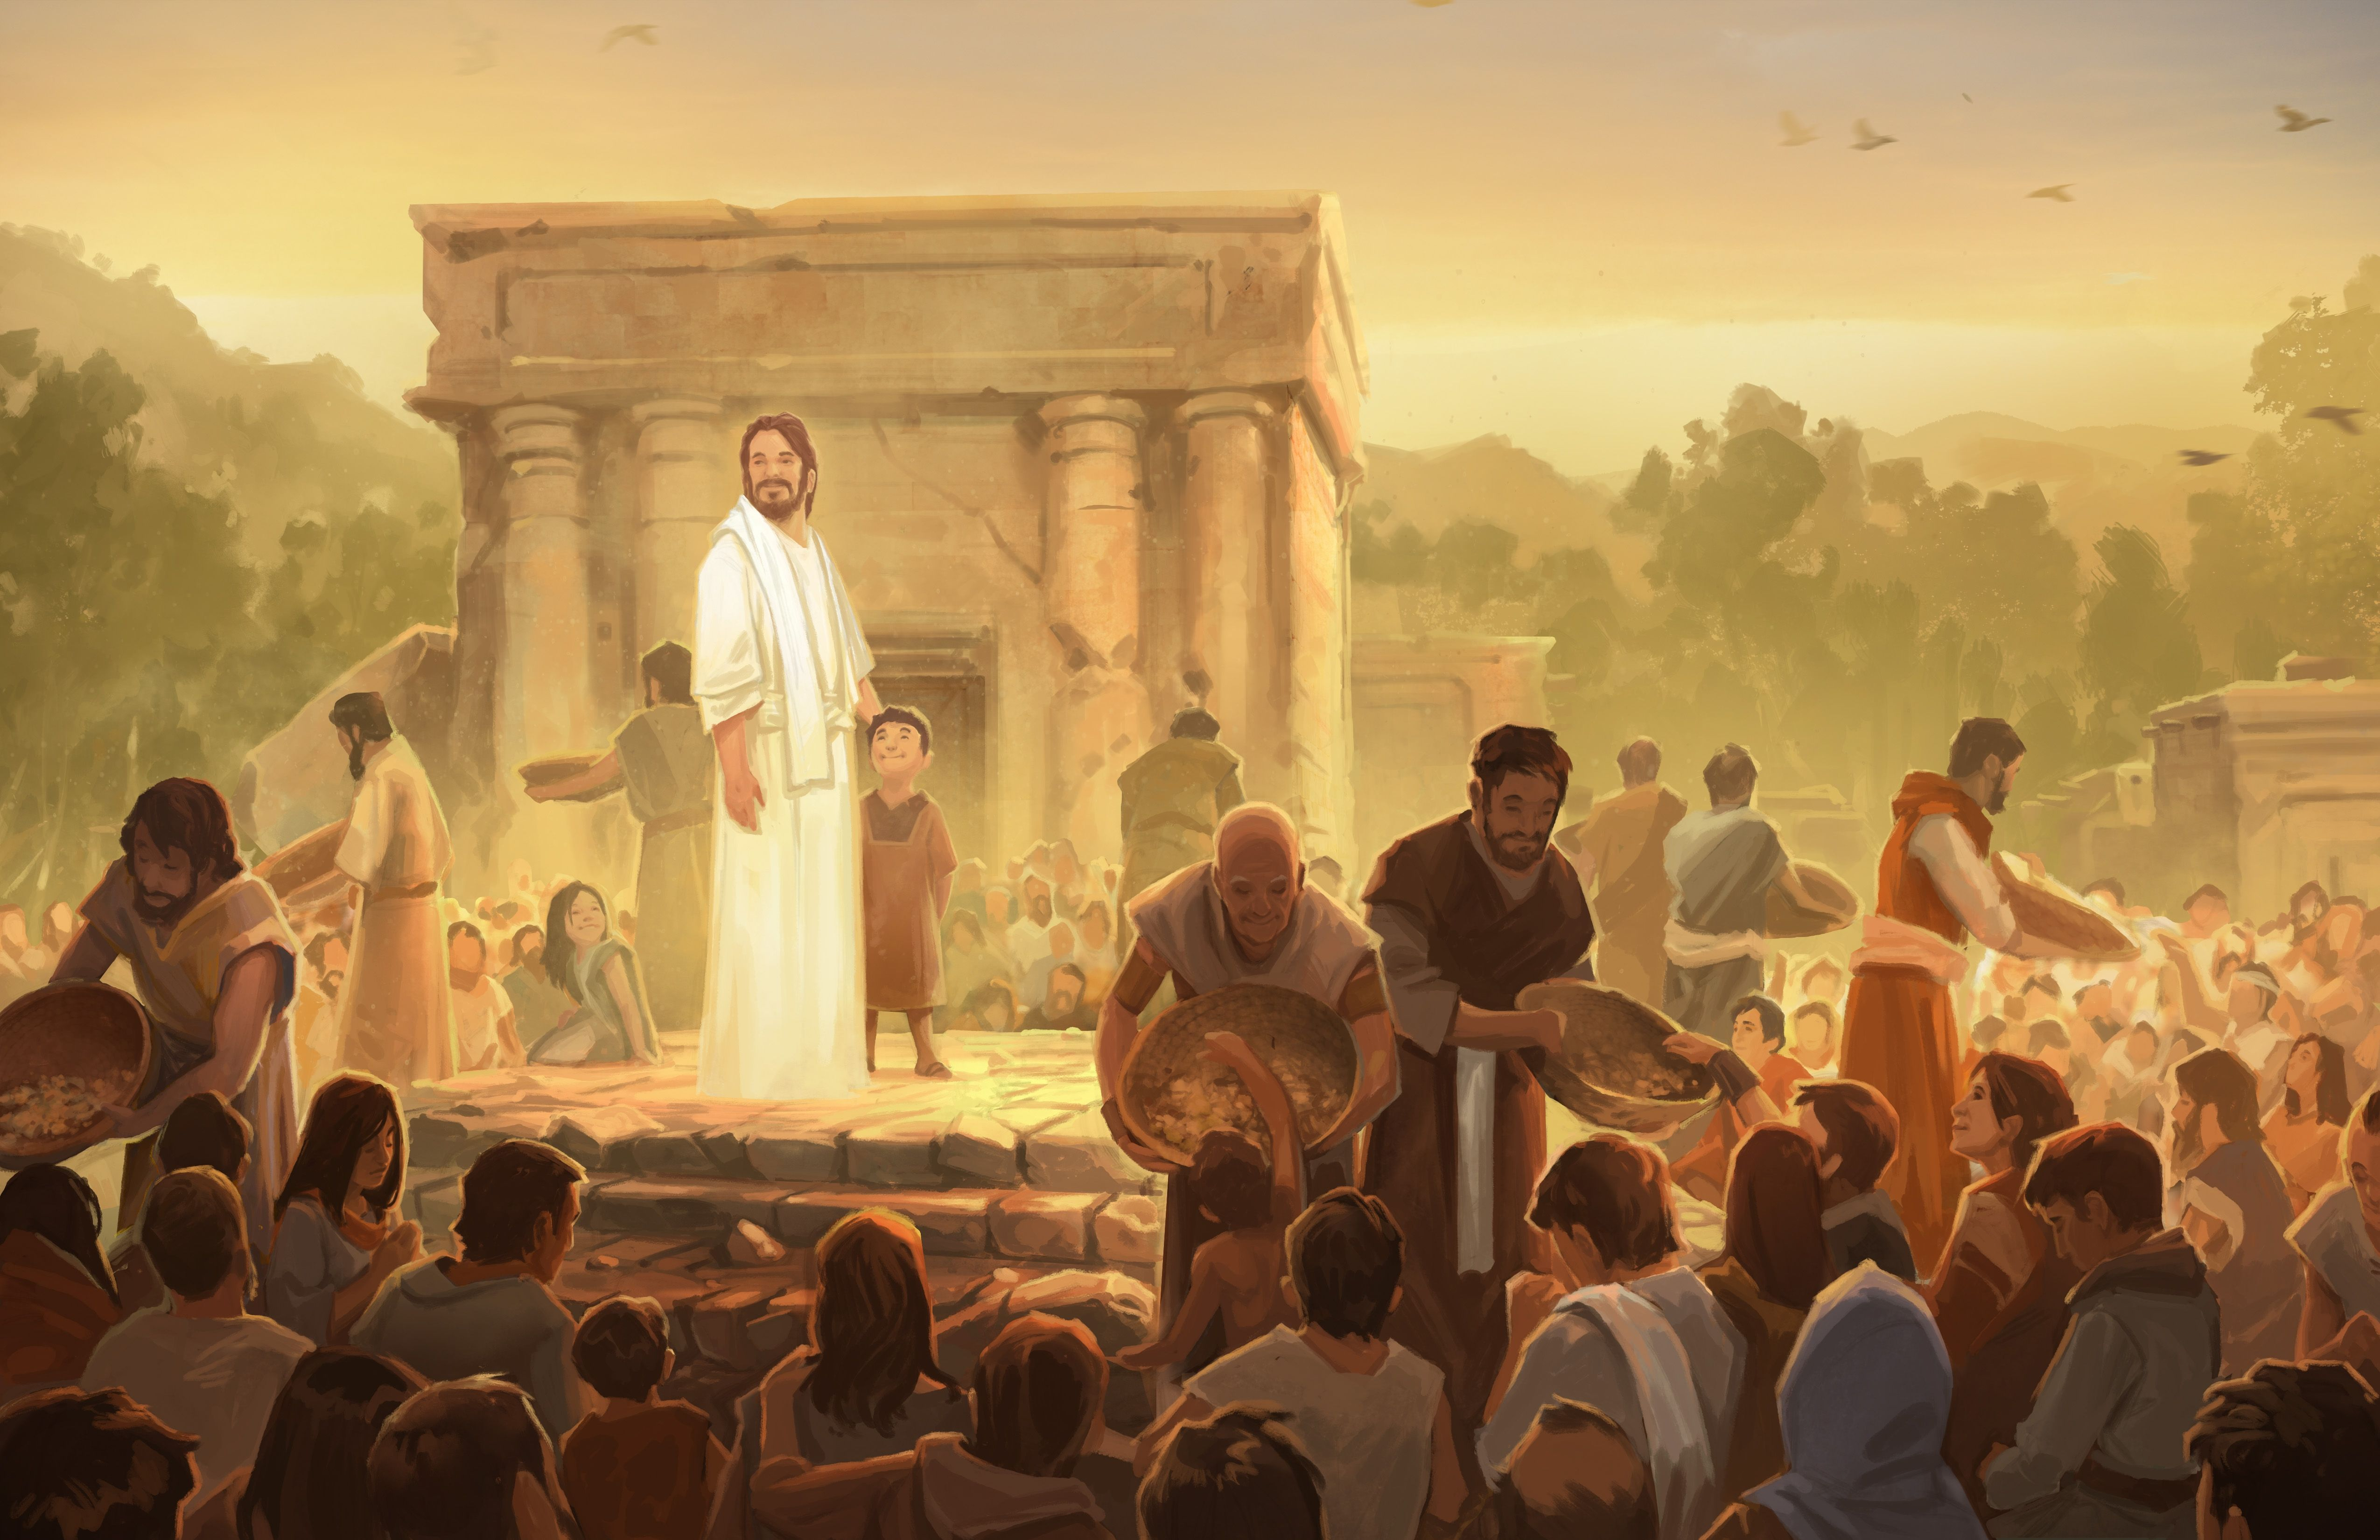 Christ Appears in Americas, by Andrew Bosley